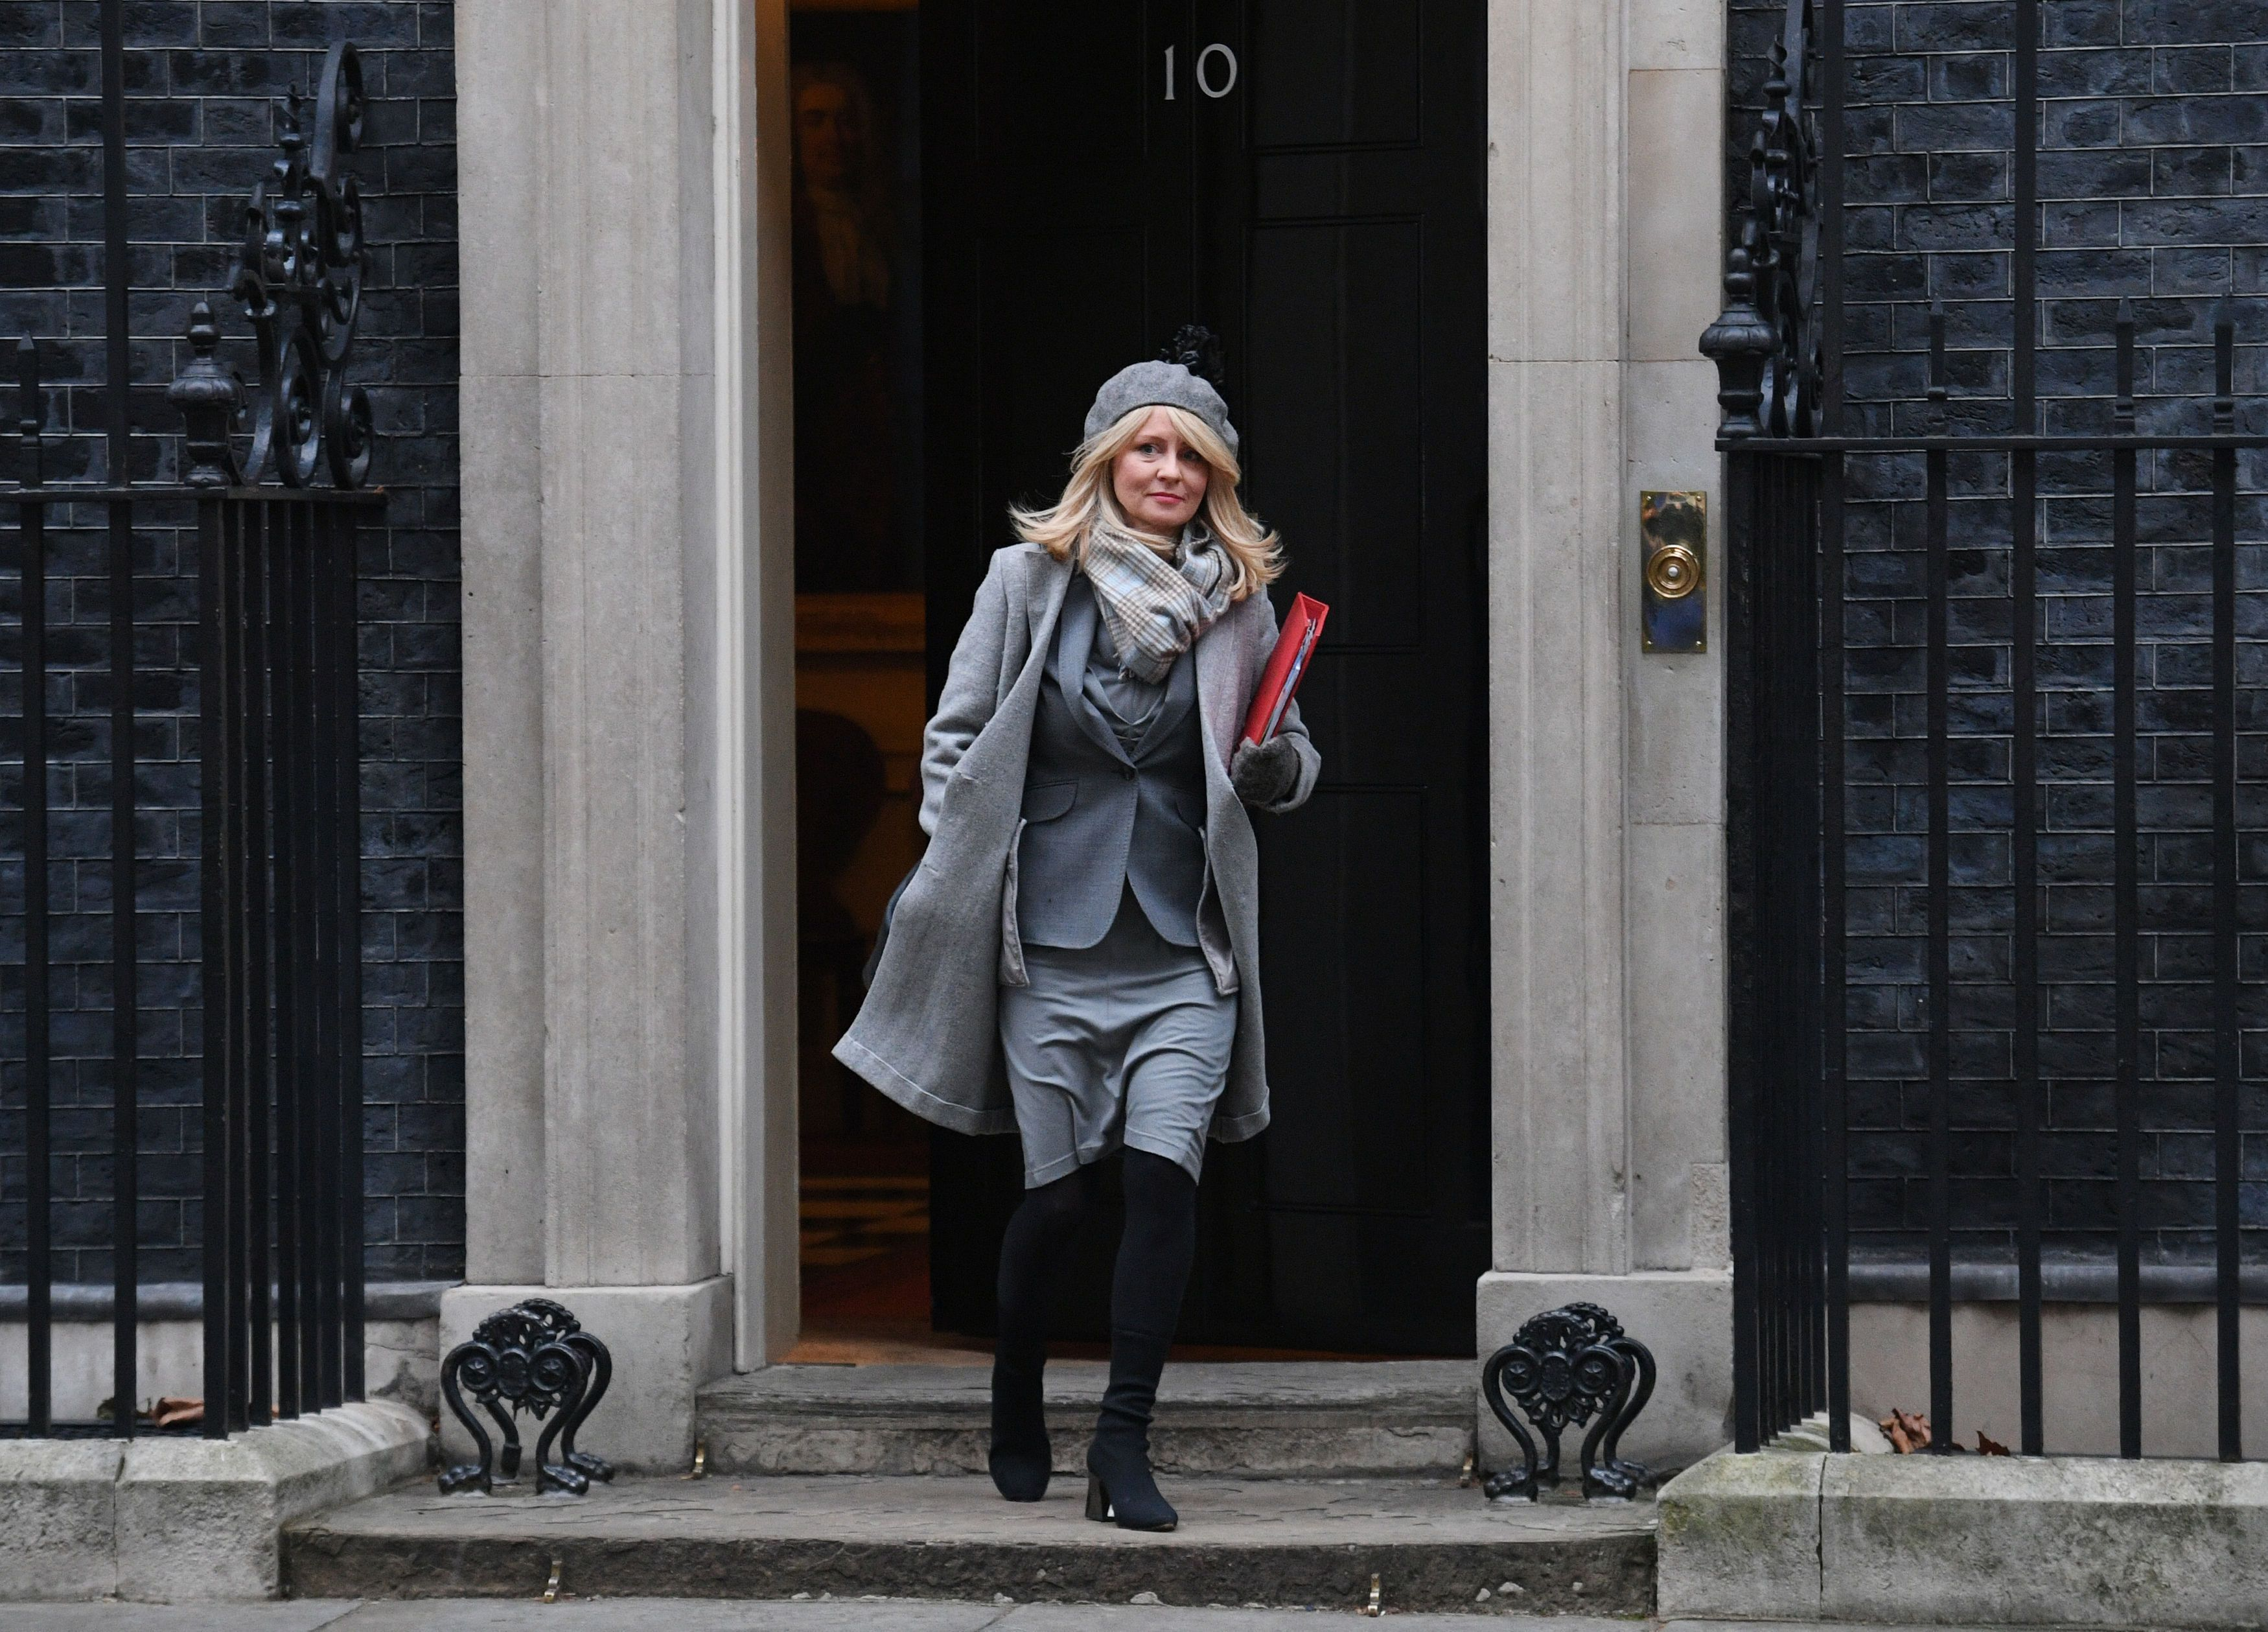 Work and pensions secretary Esther McVey leaves No.10 Downing Street after being promoted by Theresa May last week.